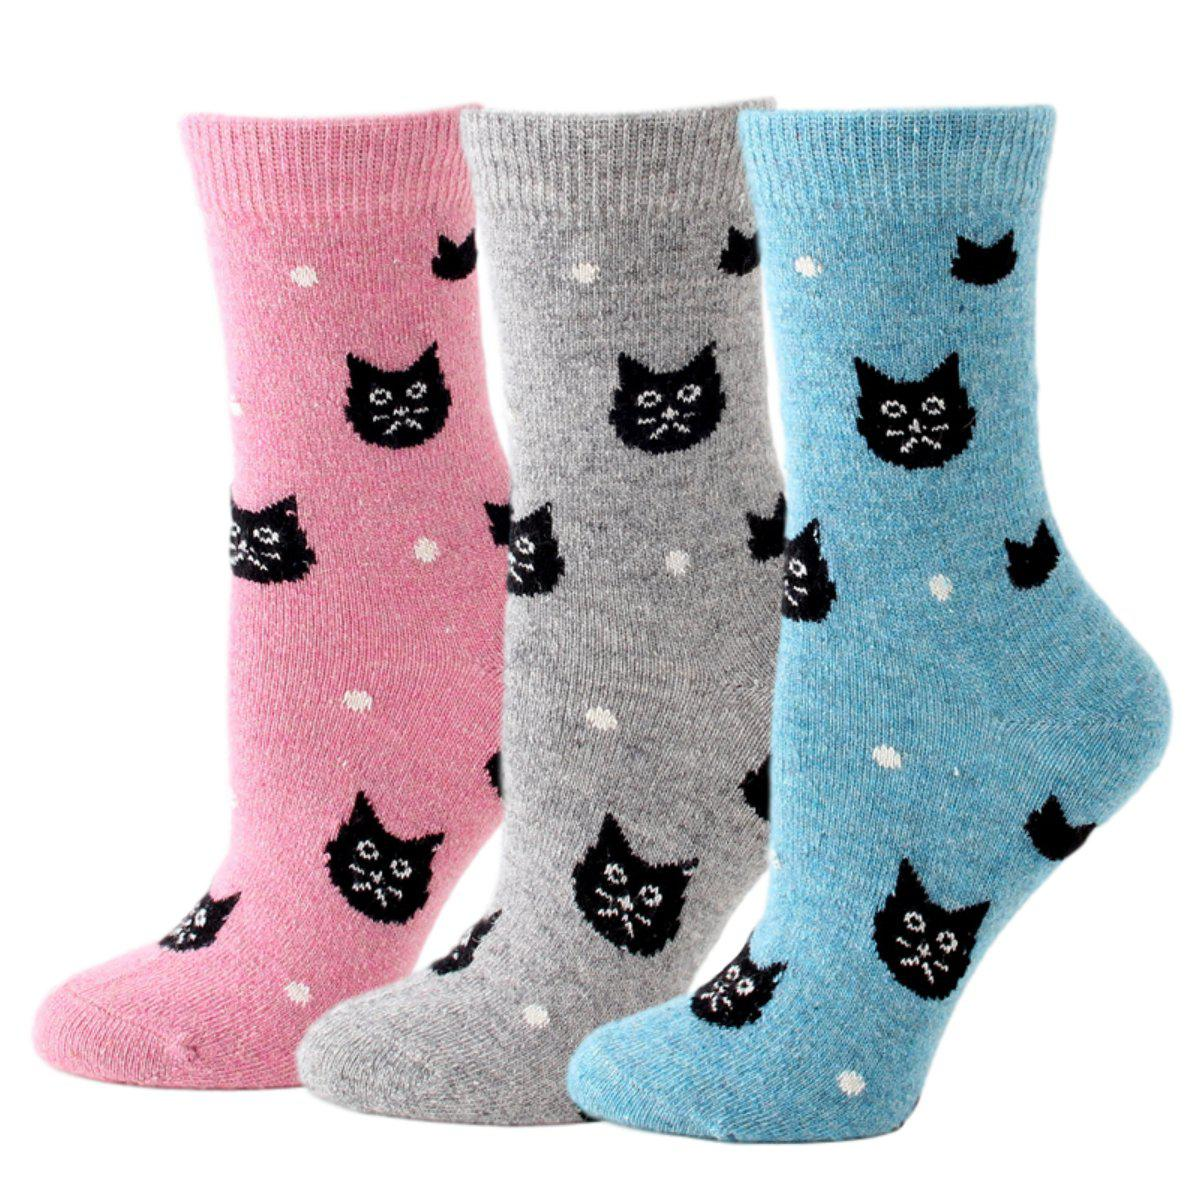 Snowy Cat Wool Blend Socks